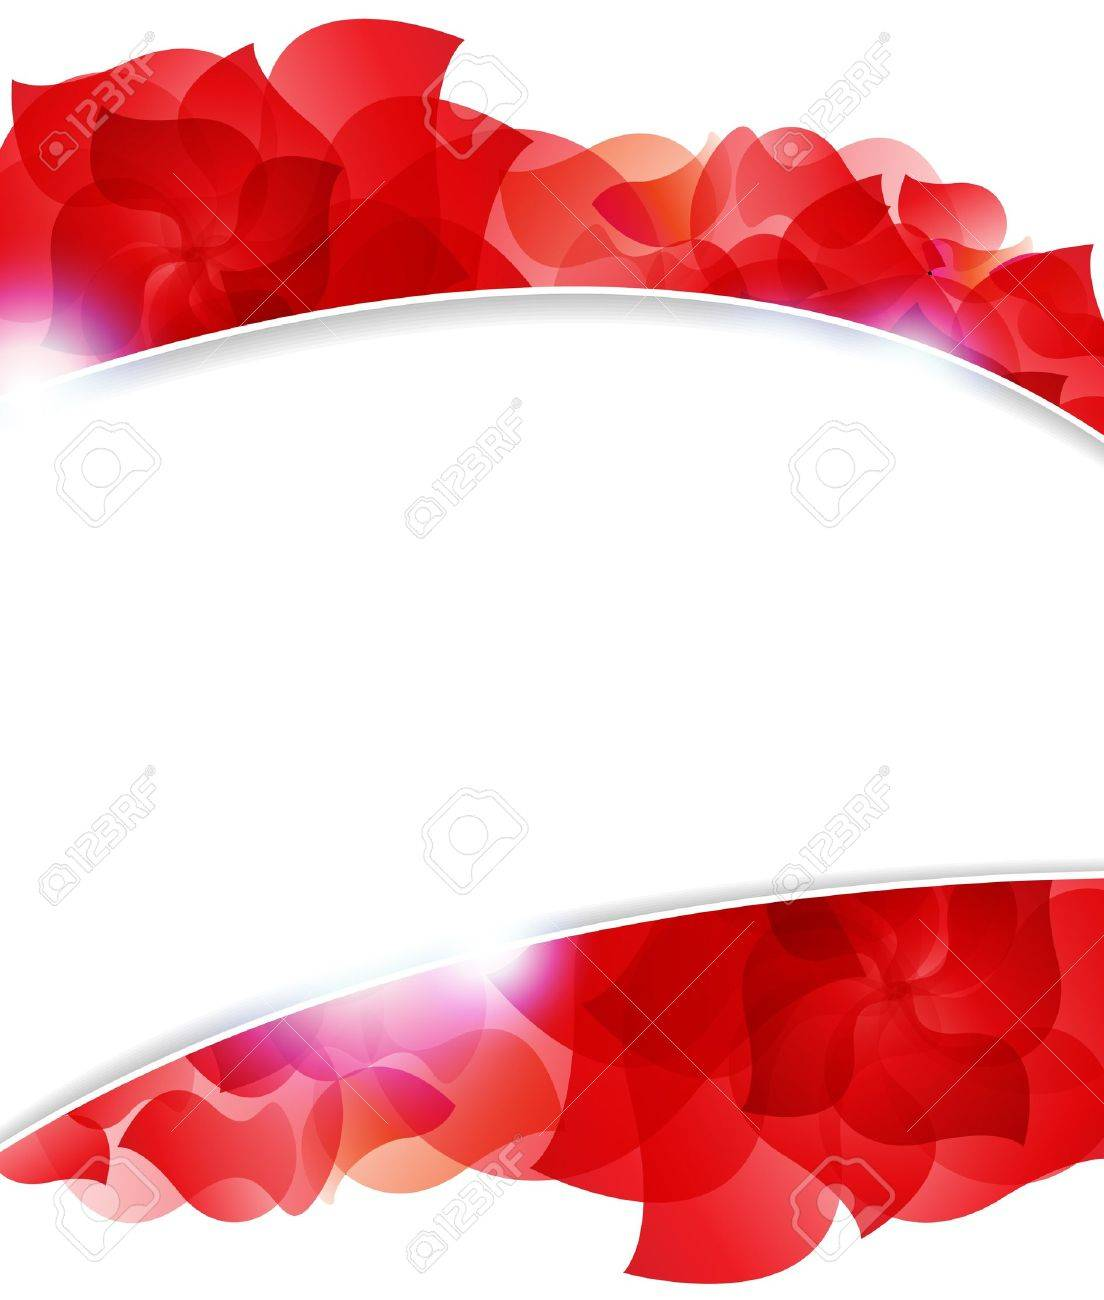 Transparent red petals on a white background. Abstract frame with place for text - 19086981